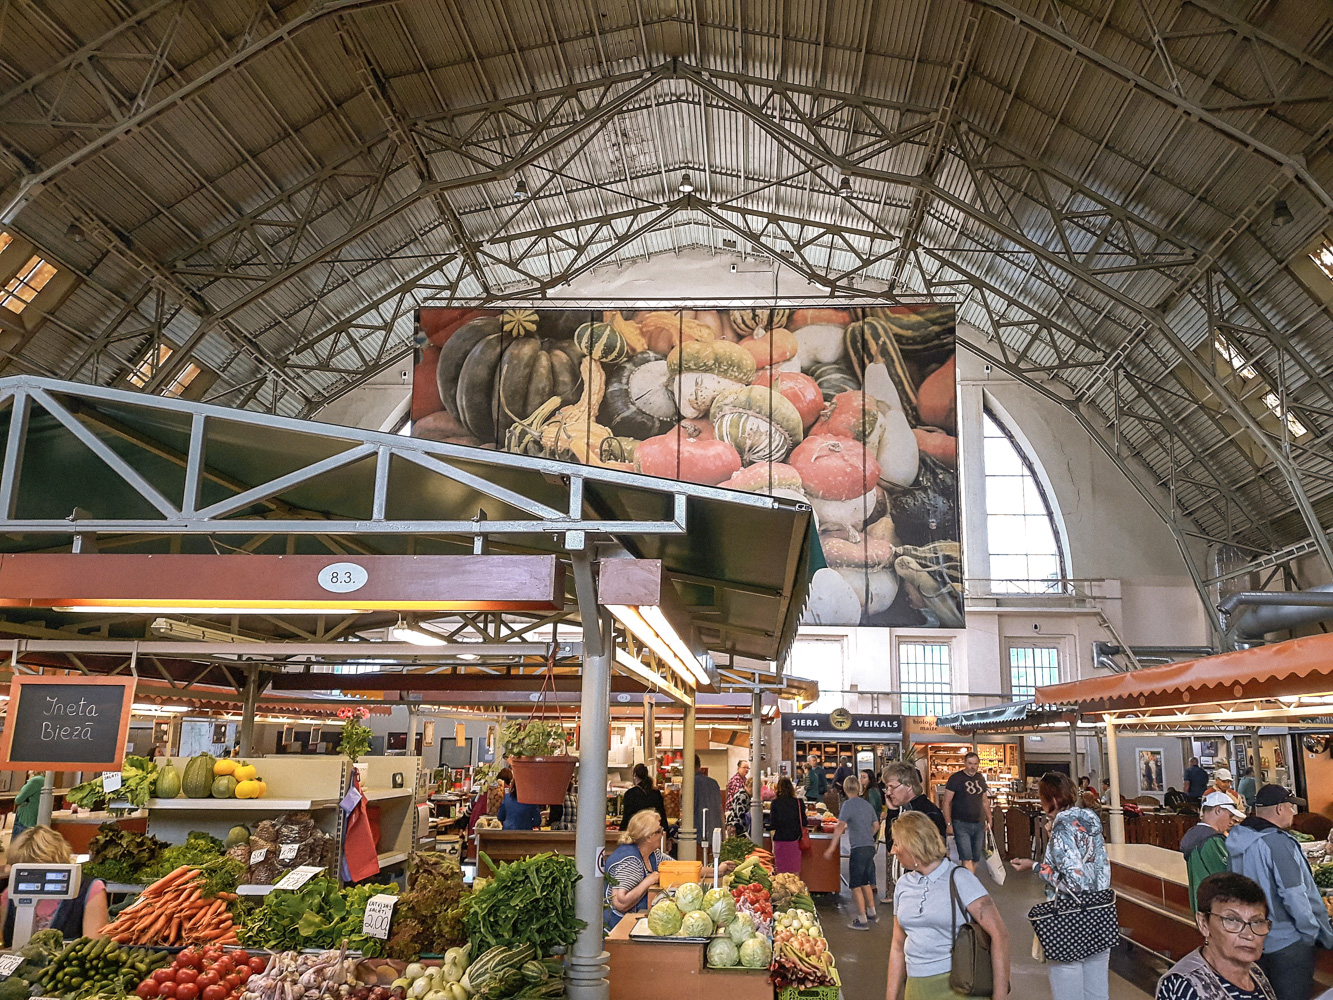 What to do in Riga visit Riga Central Market Hall